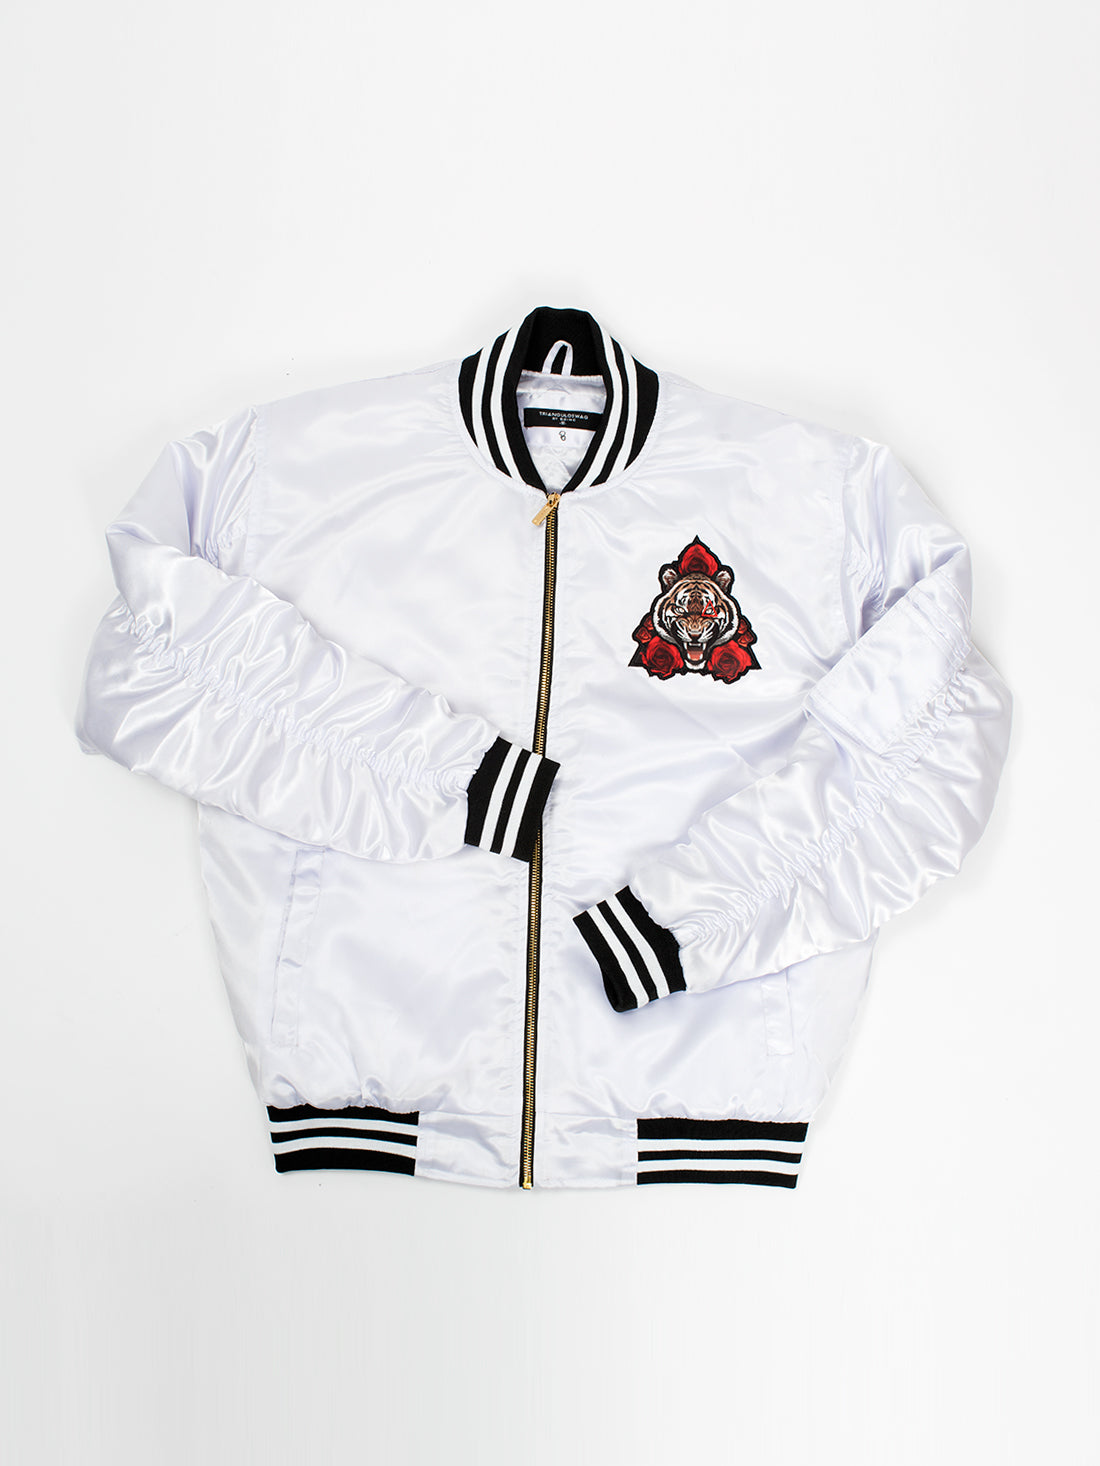 Le Tiger White Satin Jacket - Triangulo Swag